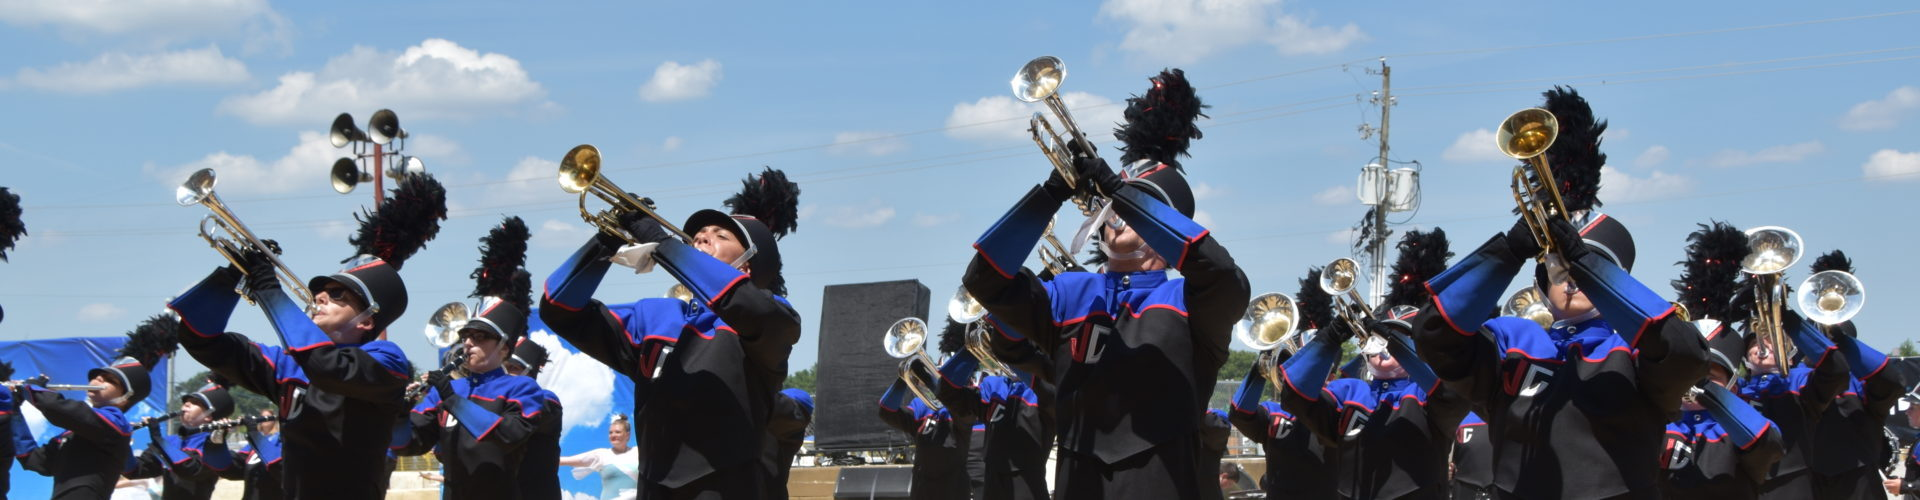 Jay County Marching Patriots